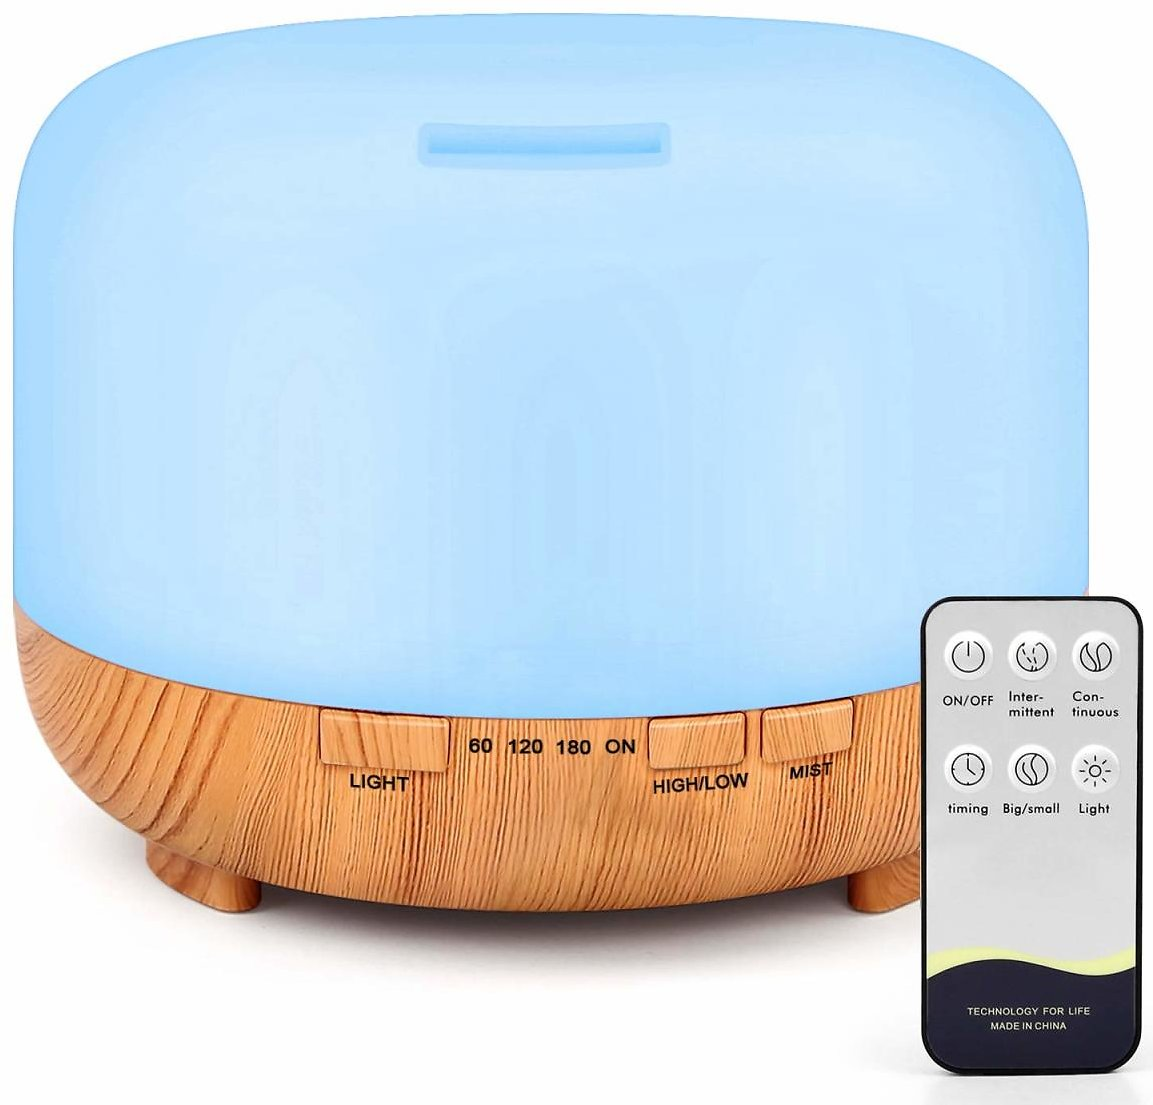 RENWER Essential Oil Diffuser - Ultrasonic Humidifier (500ml Remote Control Diffusers for Essential Oils)